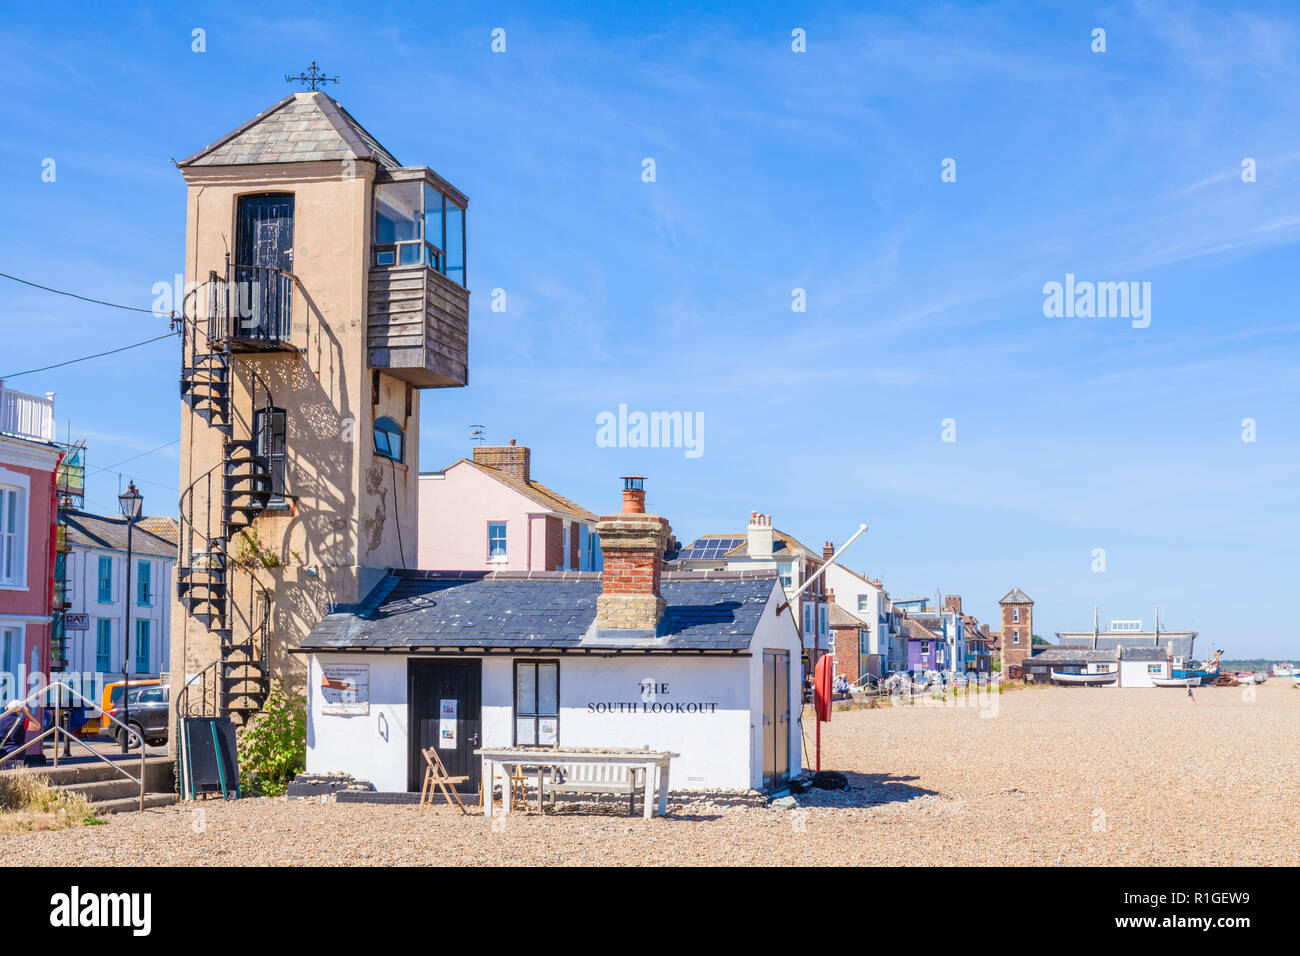 Aldeburgh Suffolk Aldeburgh beach shingle beach pebble beach with the iconic tower of the Aldeburgh Beach Lookout international art destination UK - Stock Image